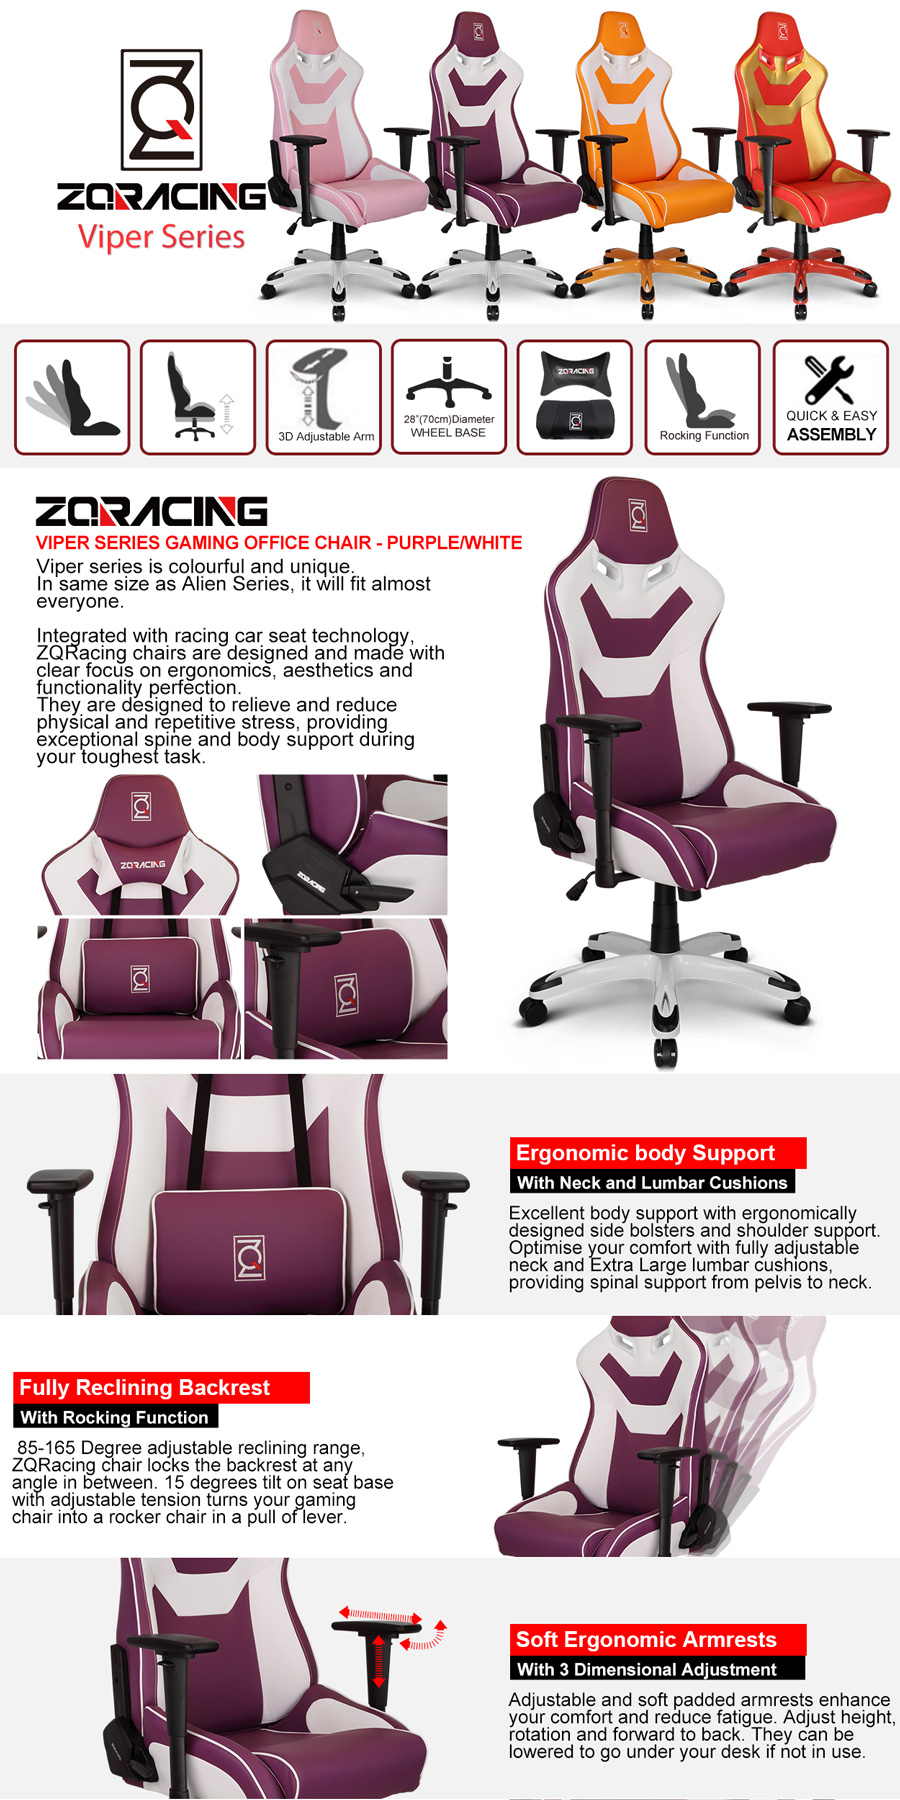 Zqracing Viper Series Gaming Office Chair Purple White